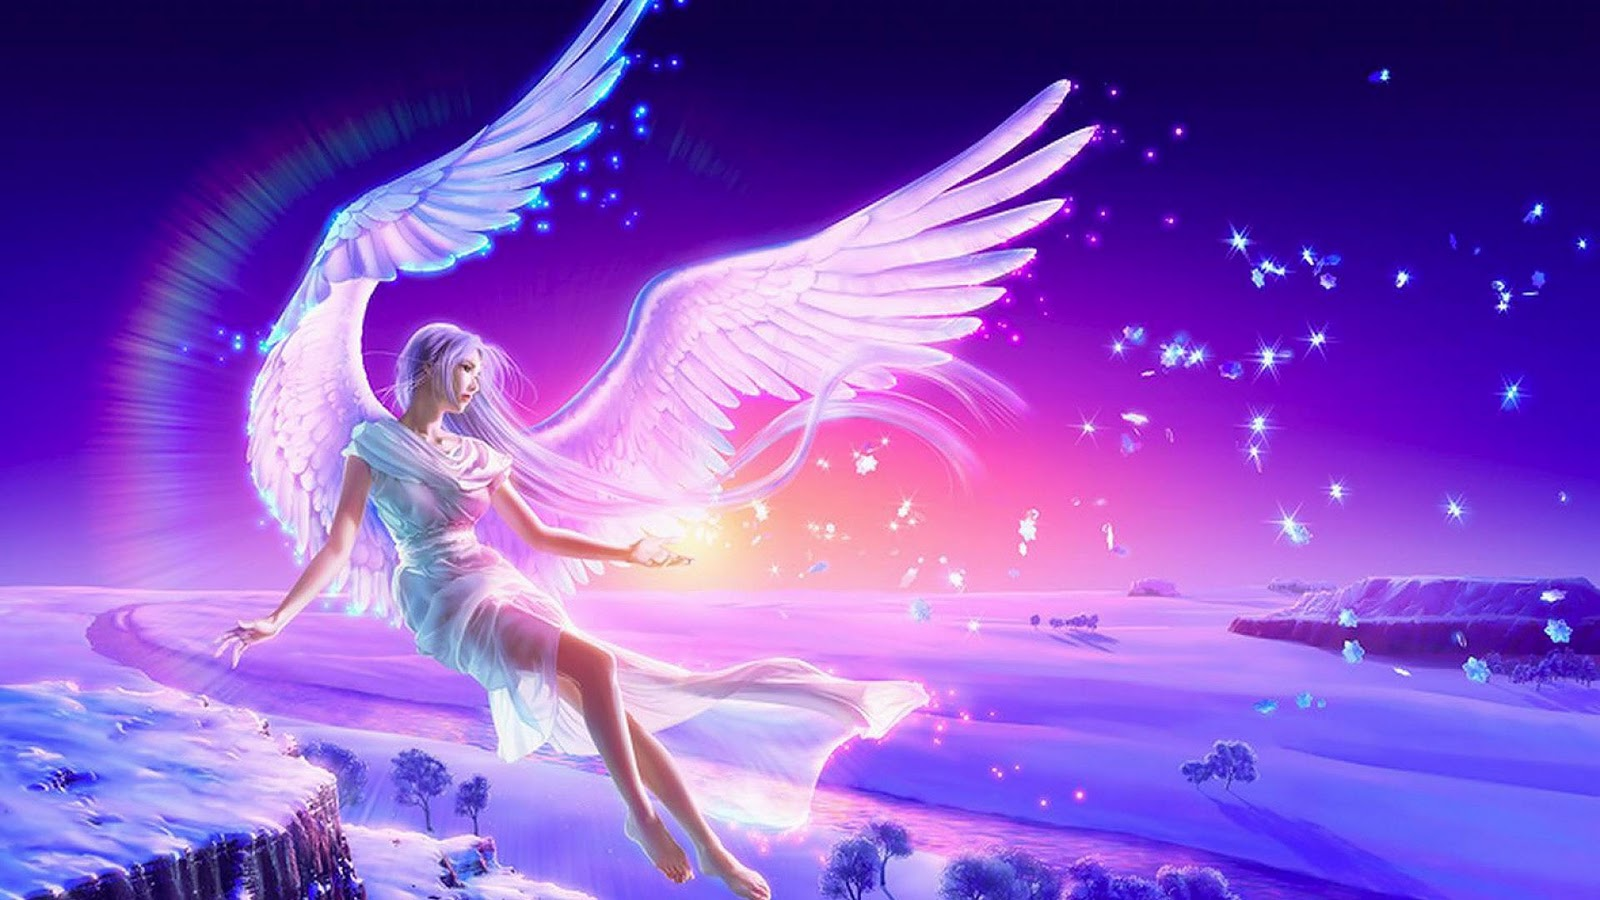 Best Wallpaper Collection: Best Angel Wallpapers